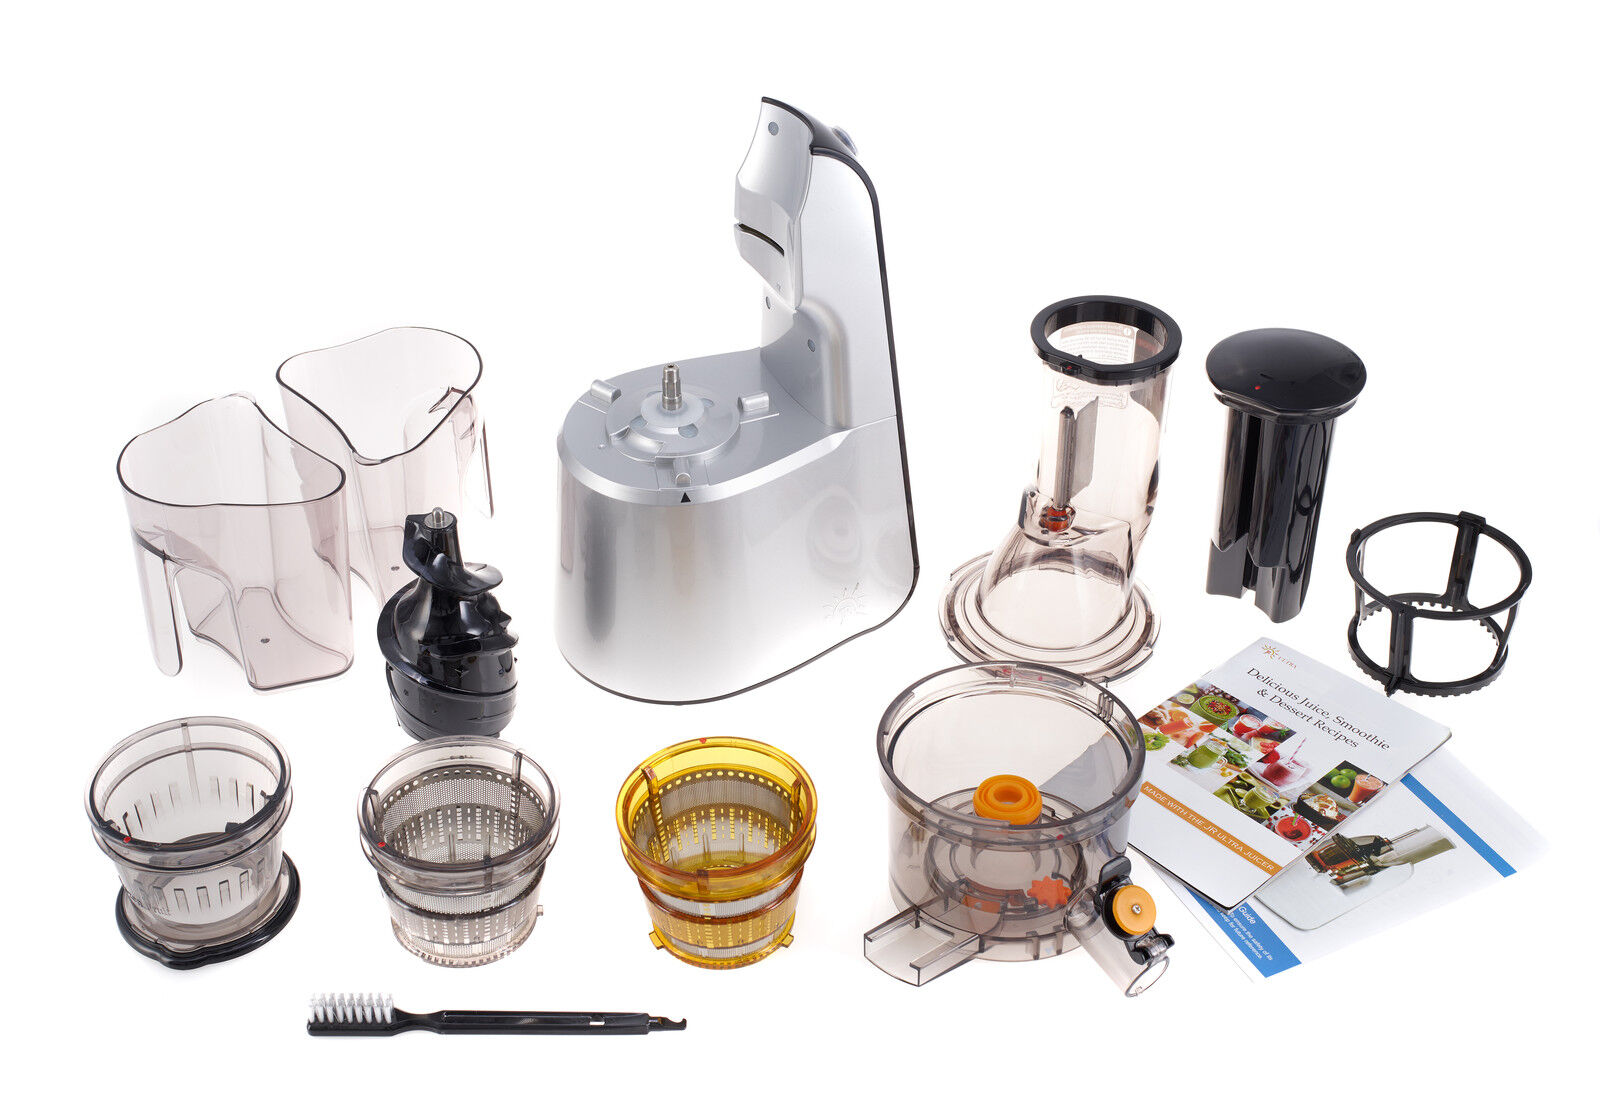 Jr Ultra 8000 S Whole Slow Juicer Review : JR Ultra 8000 S Whole Fruit Masticating Slow Juicer, Smoothie Maker EUR 223,75 - PicClick IT